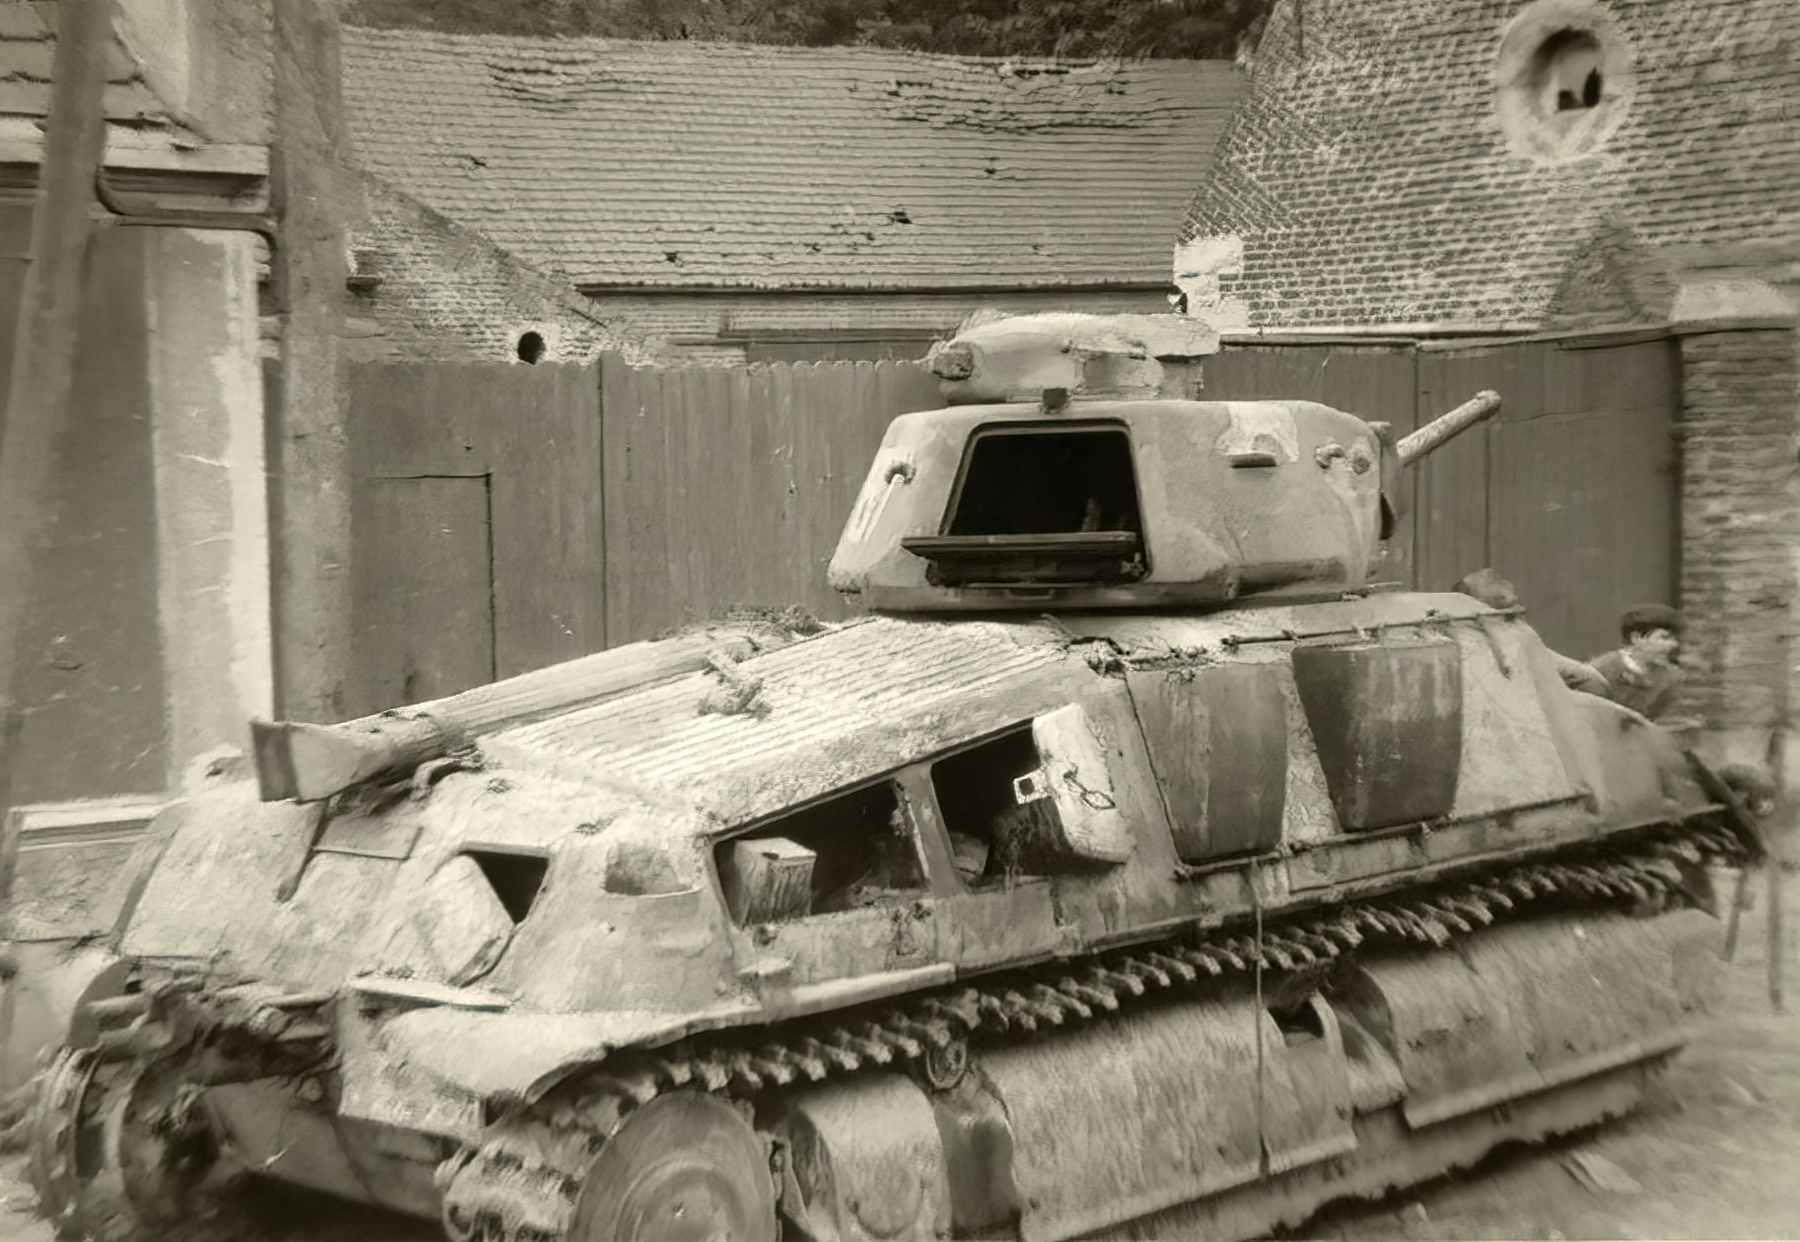 French Army Somua S35 abandoned in a street battle of France June 1940 ebay 01